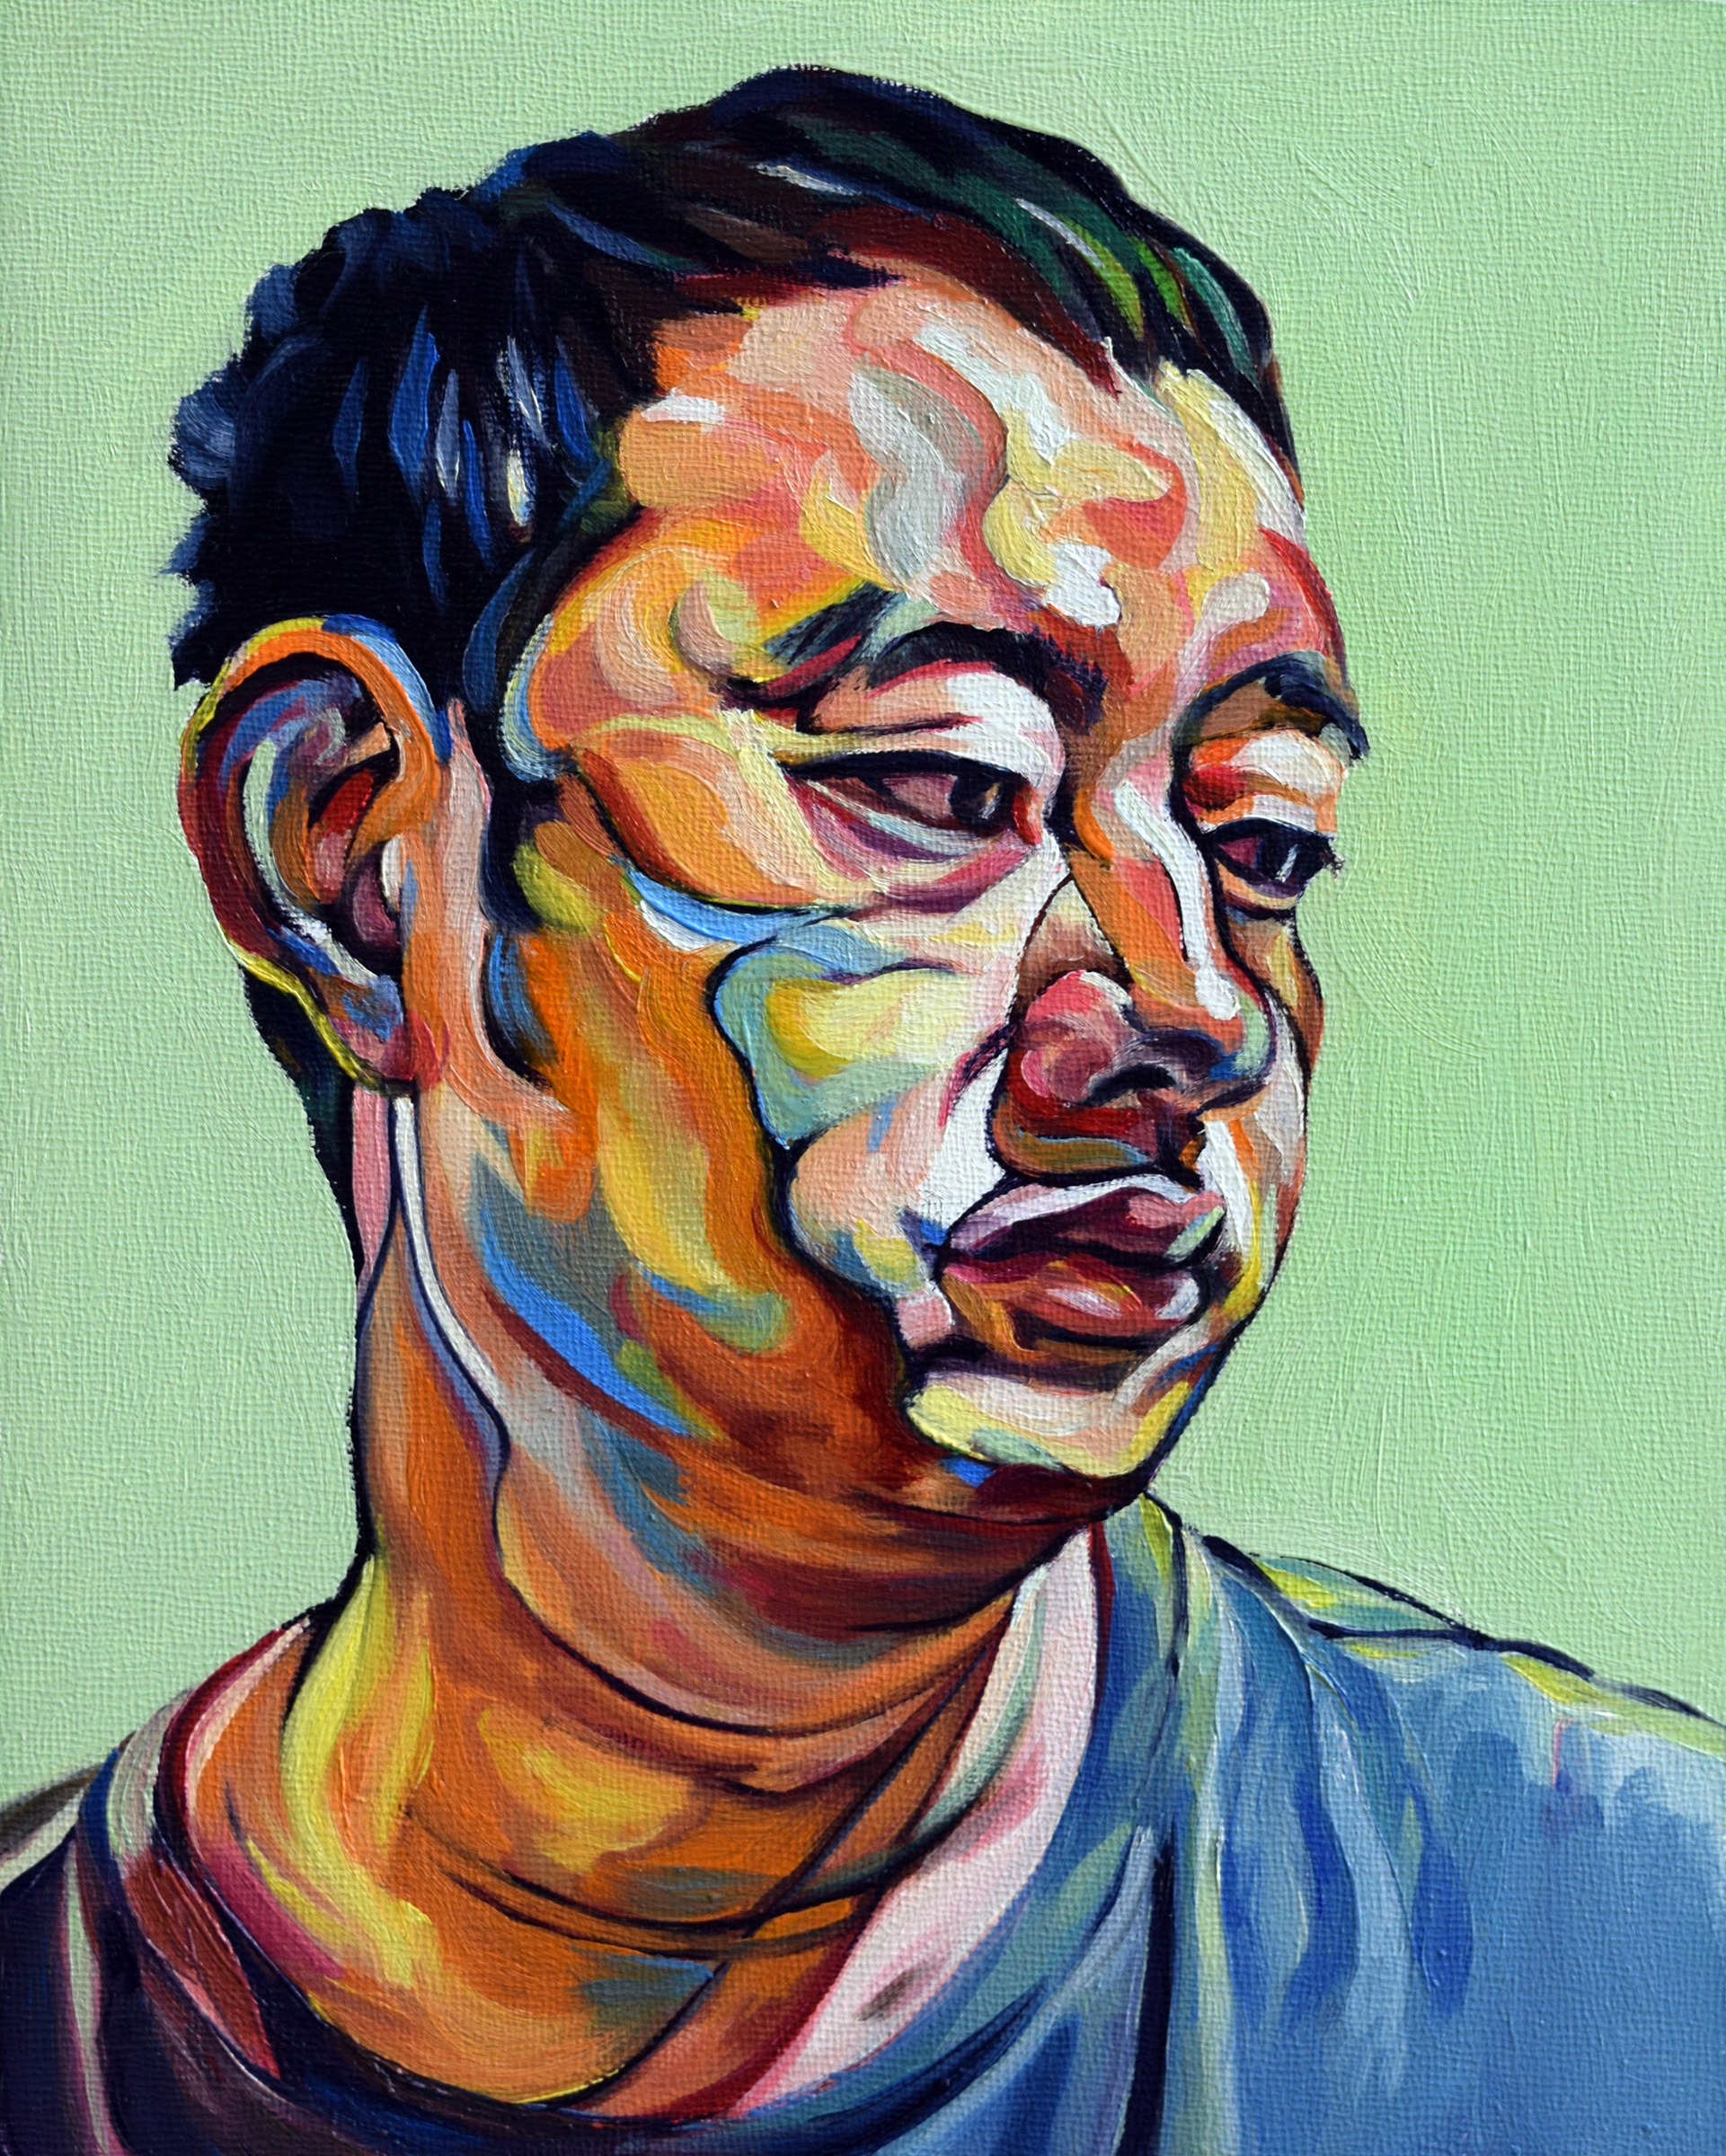 Qing_Song_Green_OilonWoodPanel_10x8.jpg